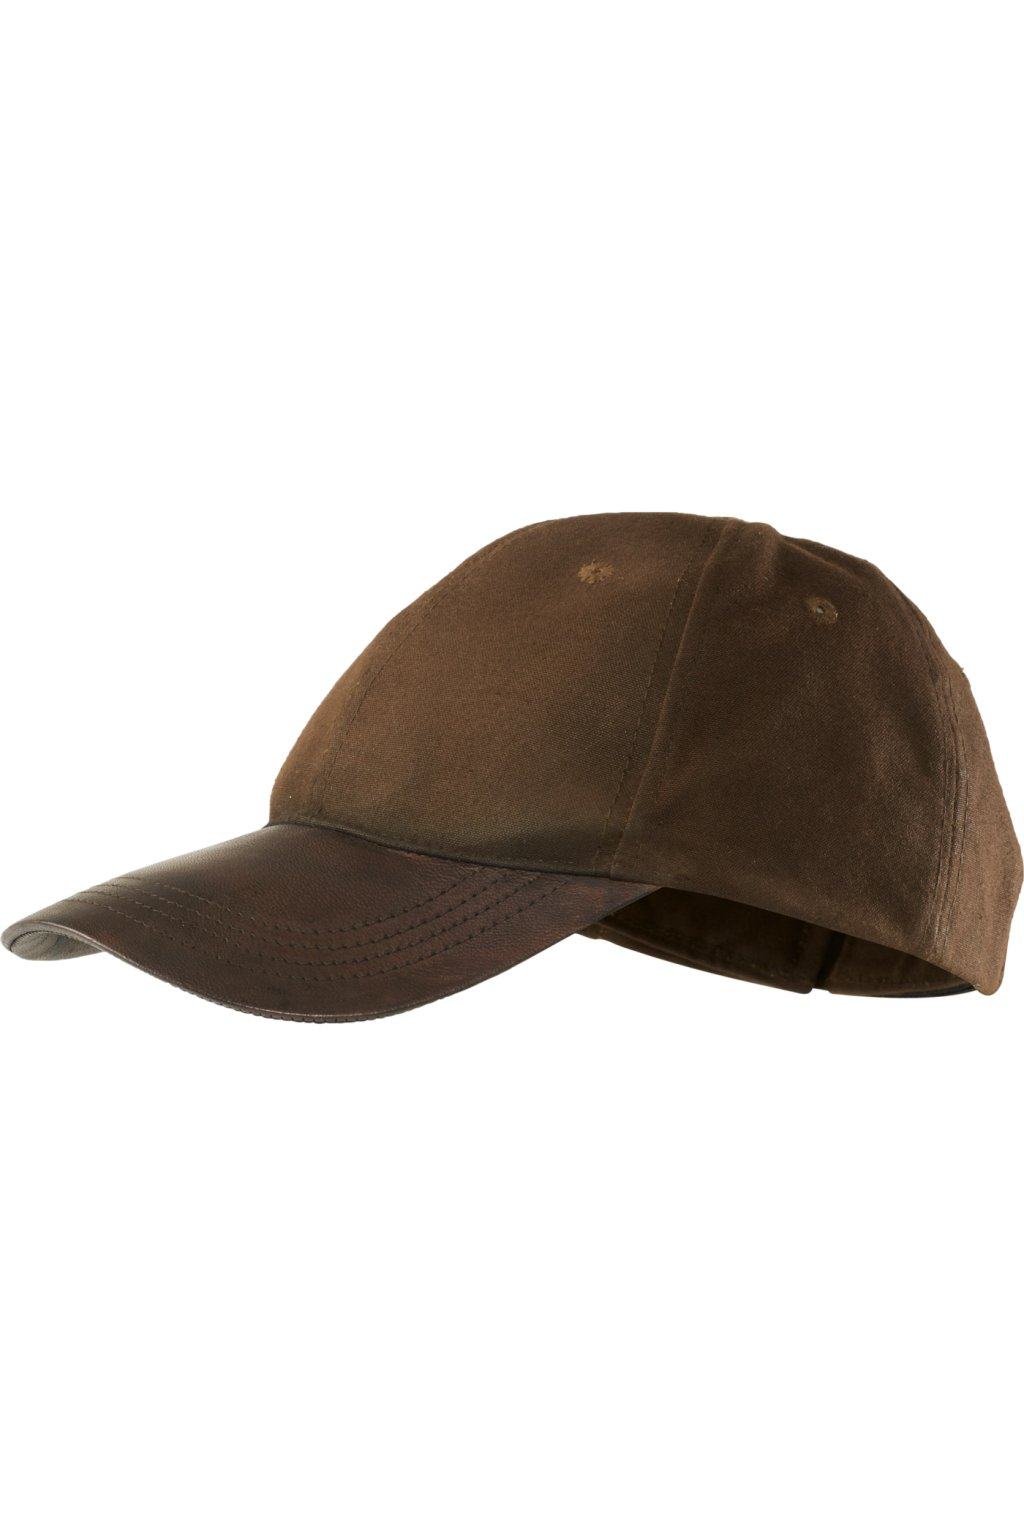 Seeland - Retriever Cap